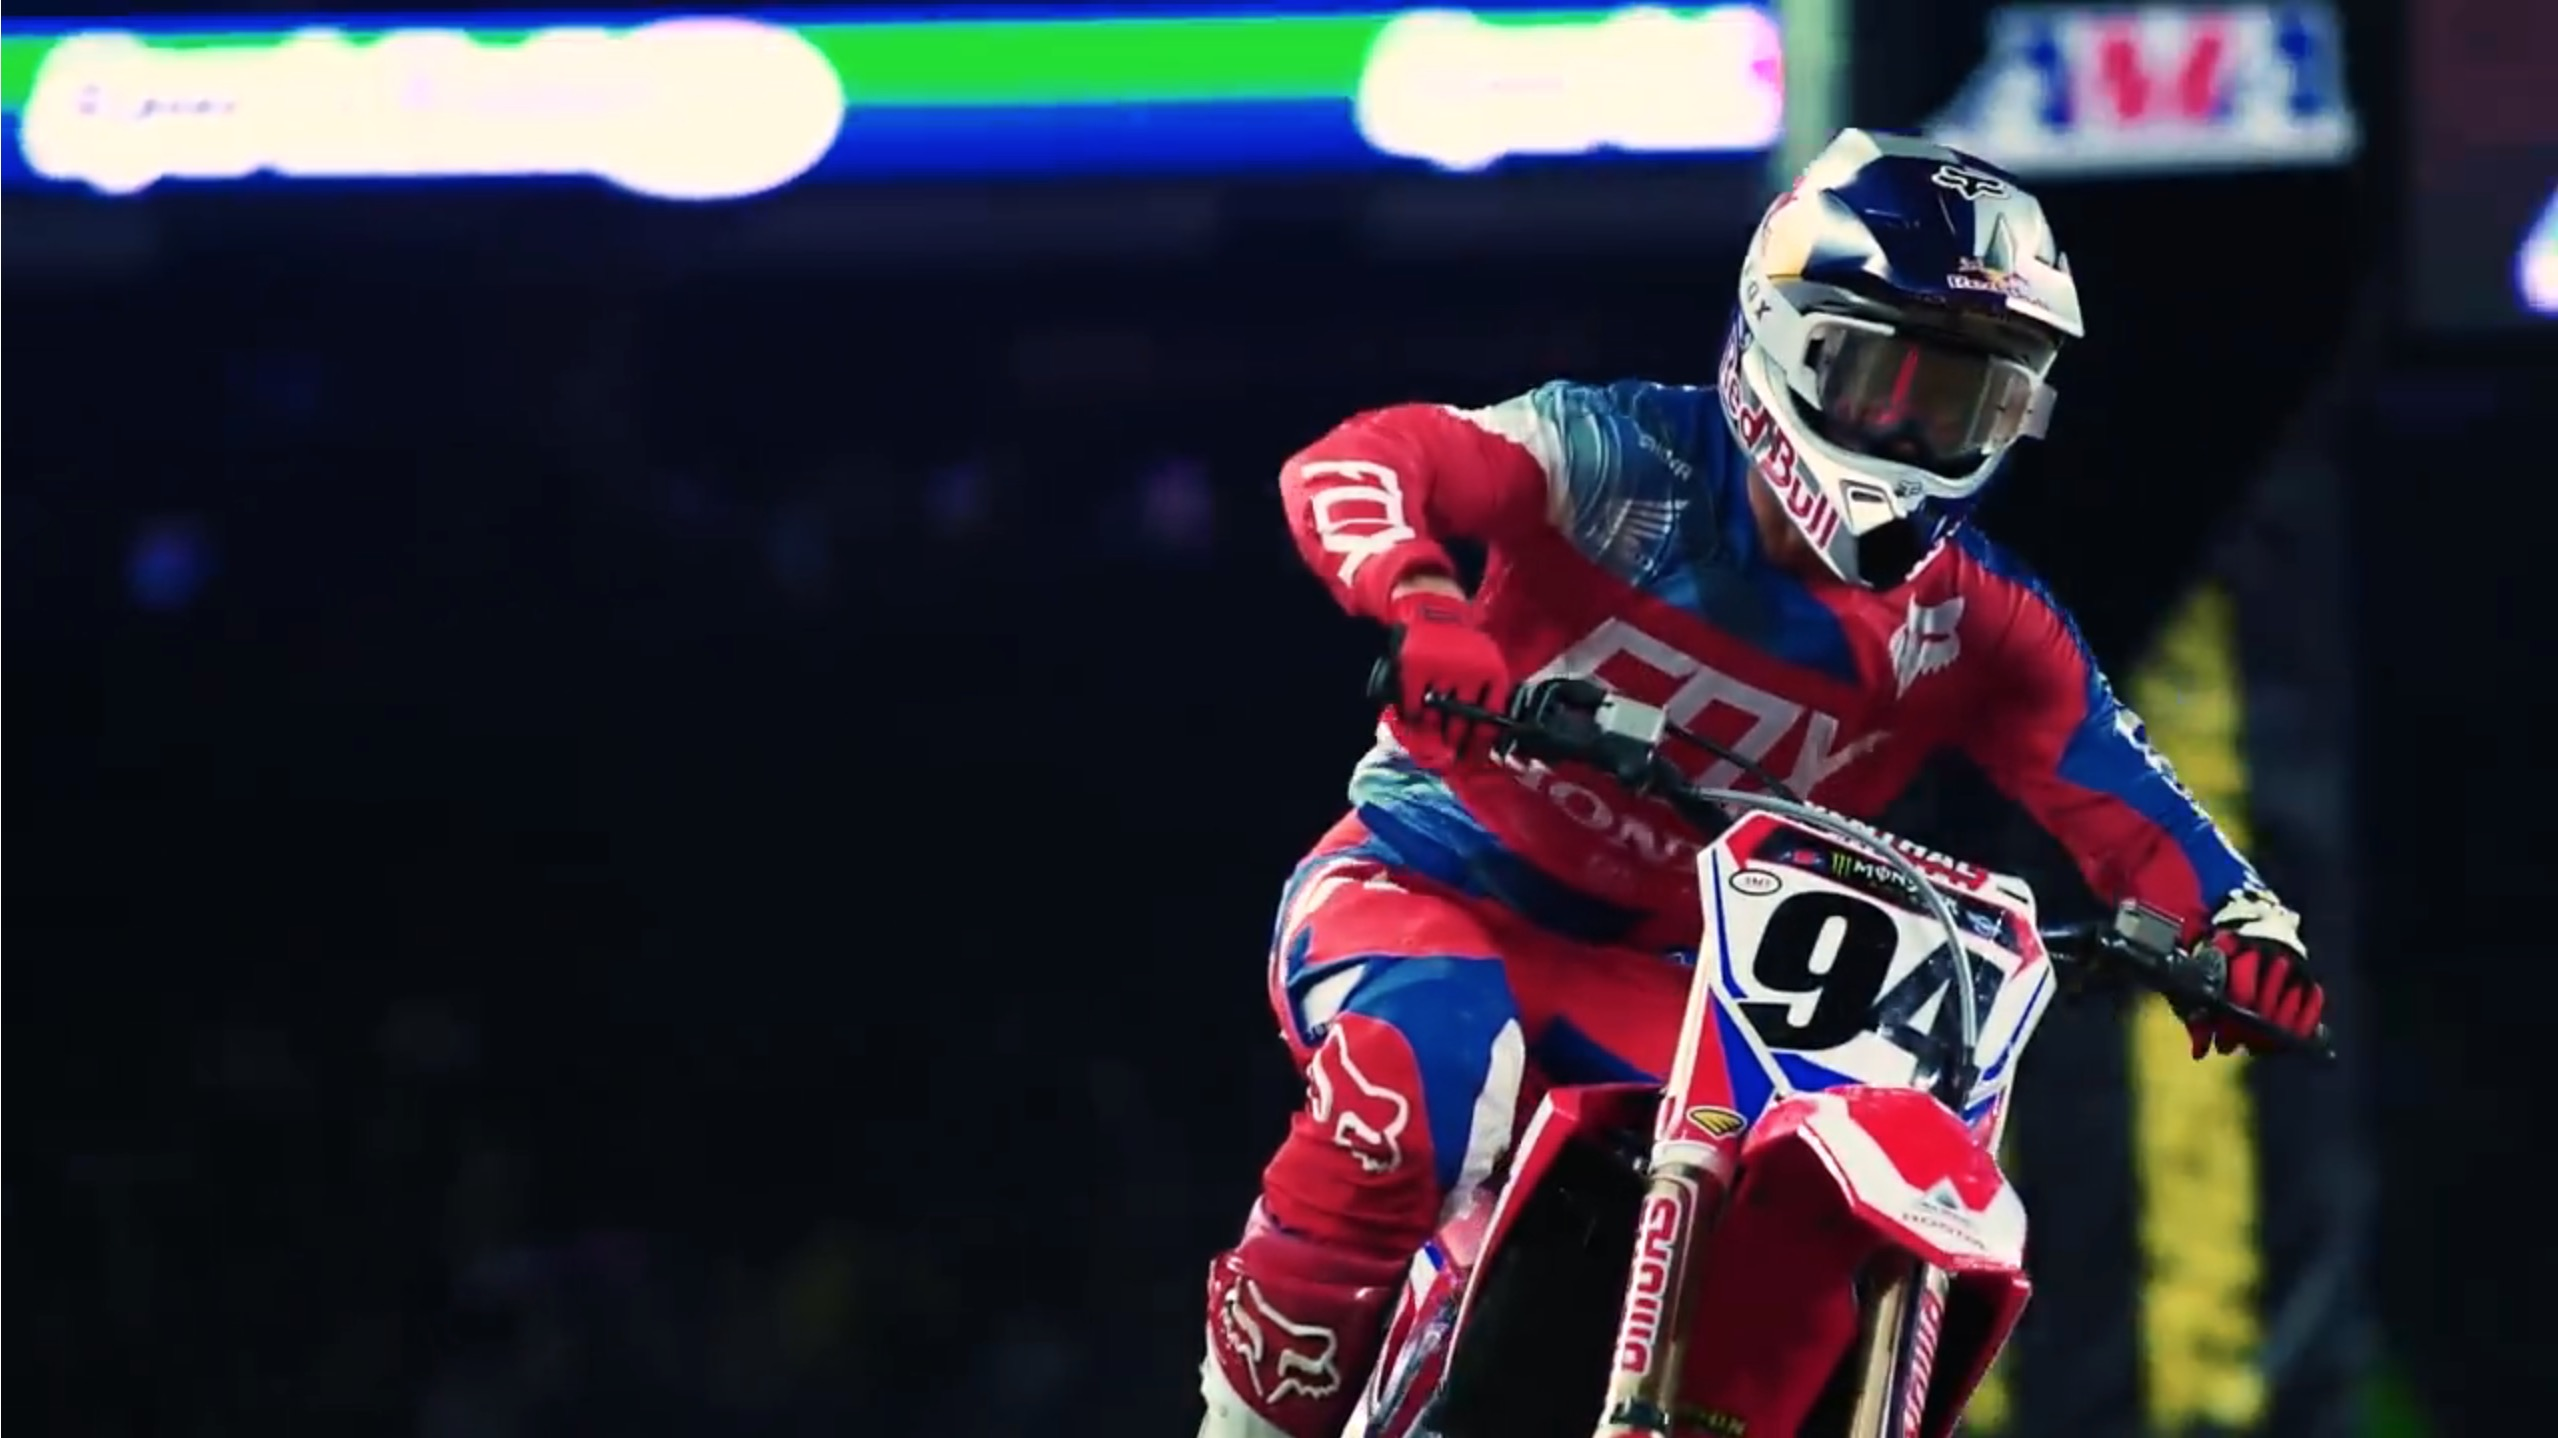 Hrc Honda Release 2019 Supercross Team Video Motohead Pit Bike Armed With The Crf450r Ken Roczen And Cole Seely Represent For Season Check Out Official Starring Both Riders